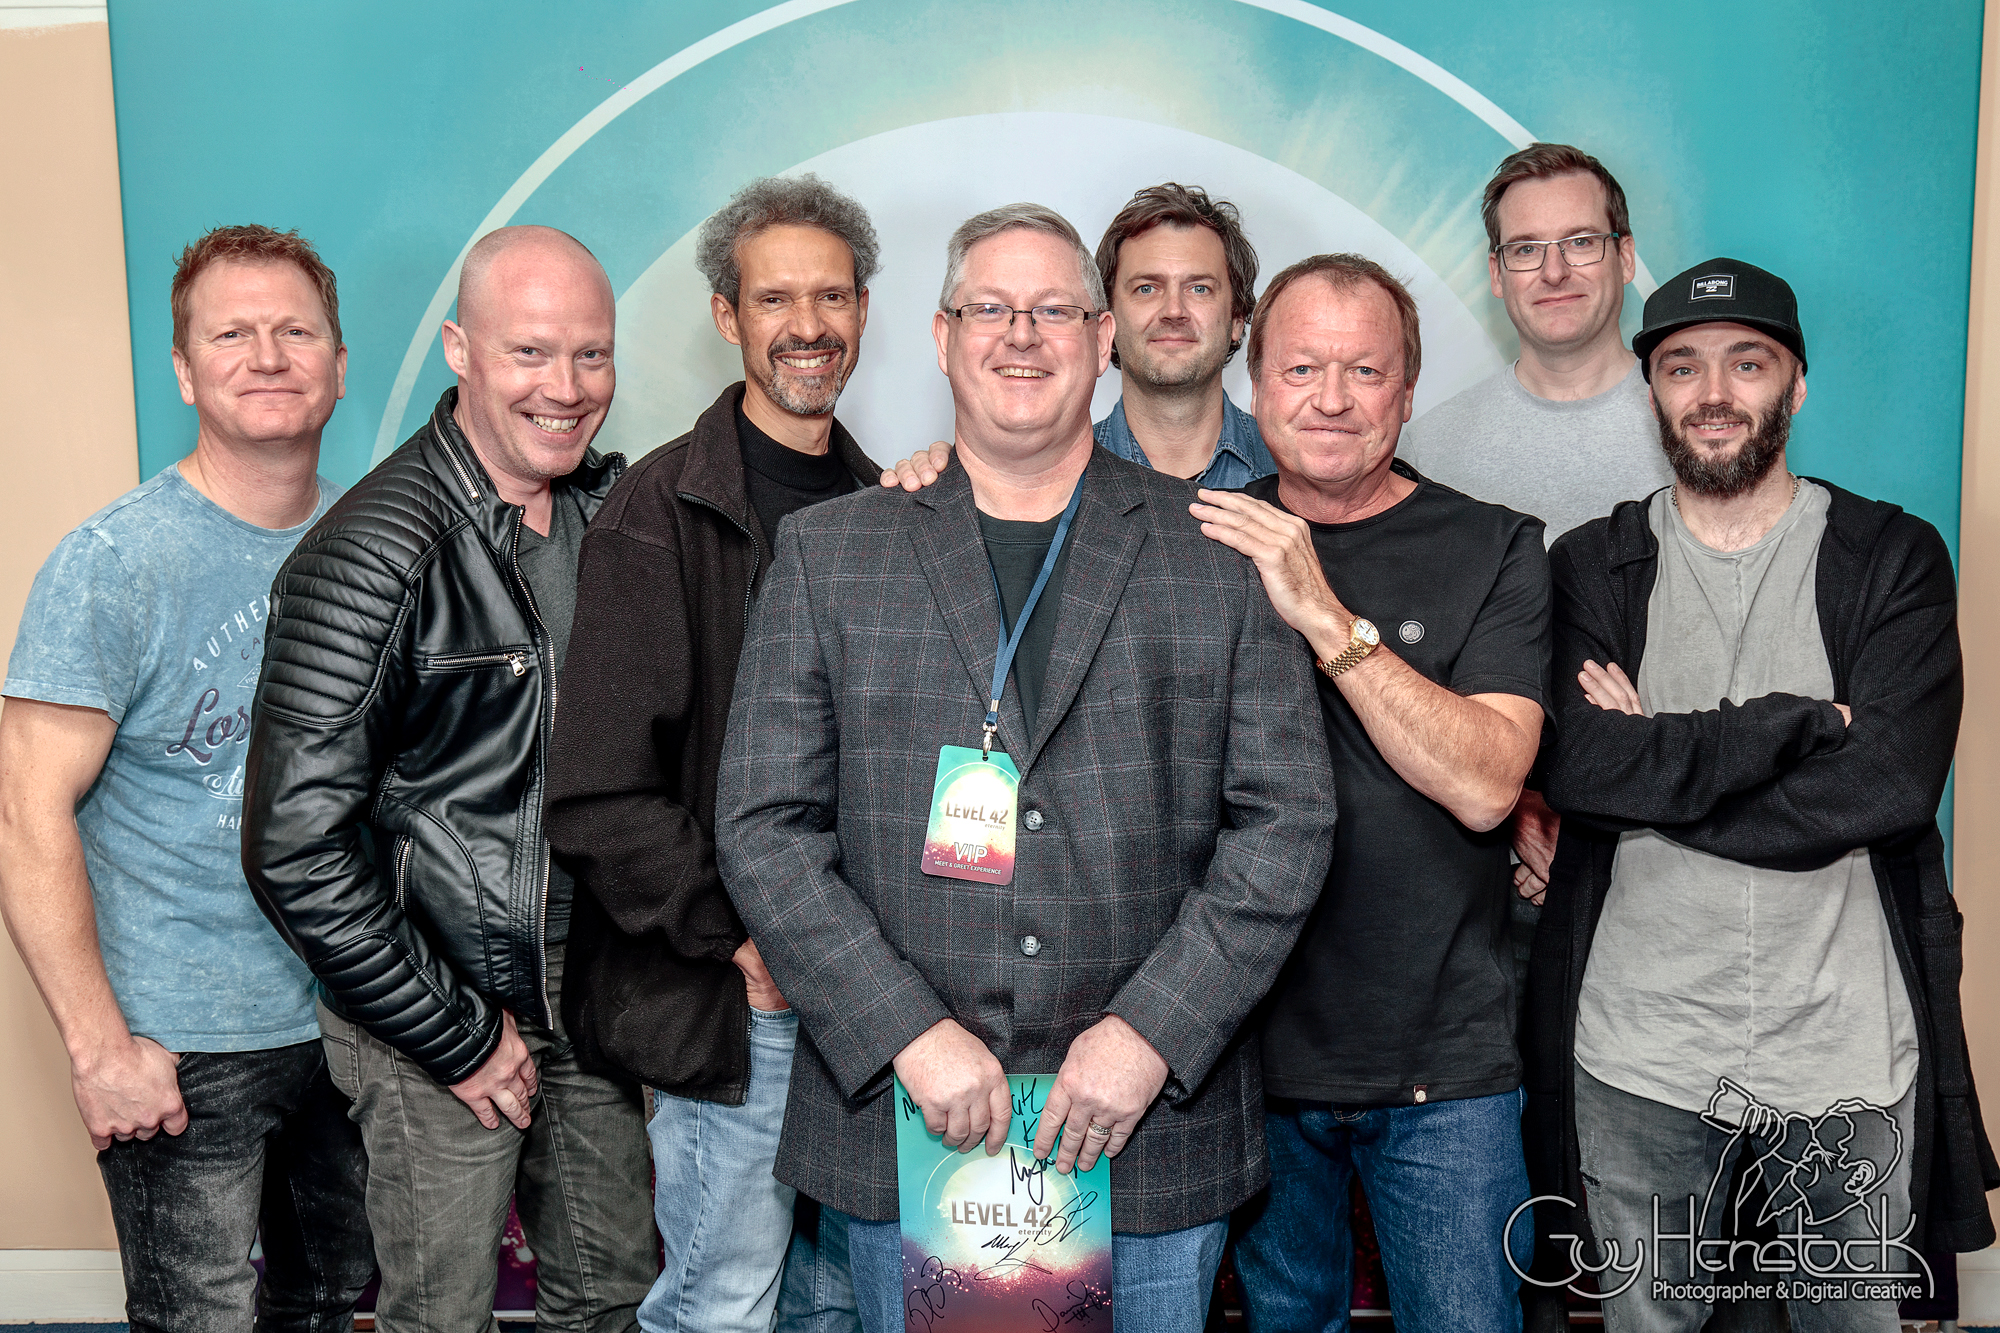 Level 42 Meet and Greet - Oxford new Theatre